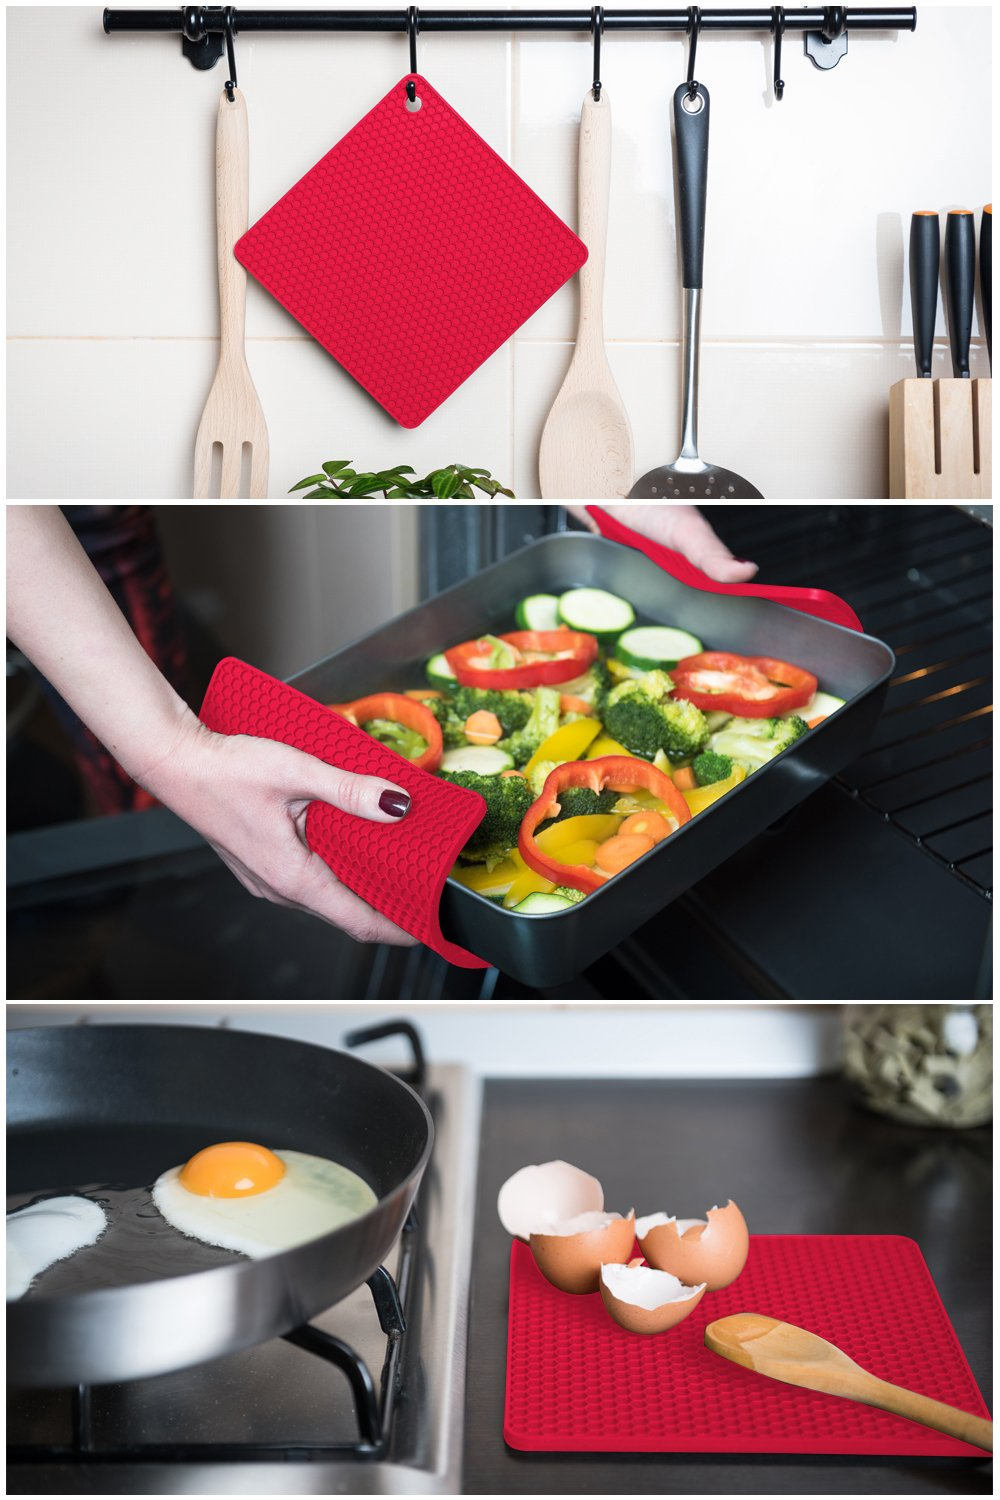 Q's INN Silicone Trivet Mats | Hot Pot Holders | Drying Mat. Our 7 in 1 Multi-Purpose Kitchen Tool is Heat Resistant to 440°F, Non-slip,durable, flexible easy to wash and dry and Contains 4 pcs. by Q's INN (Image #3)